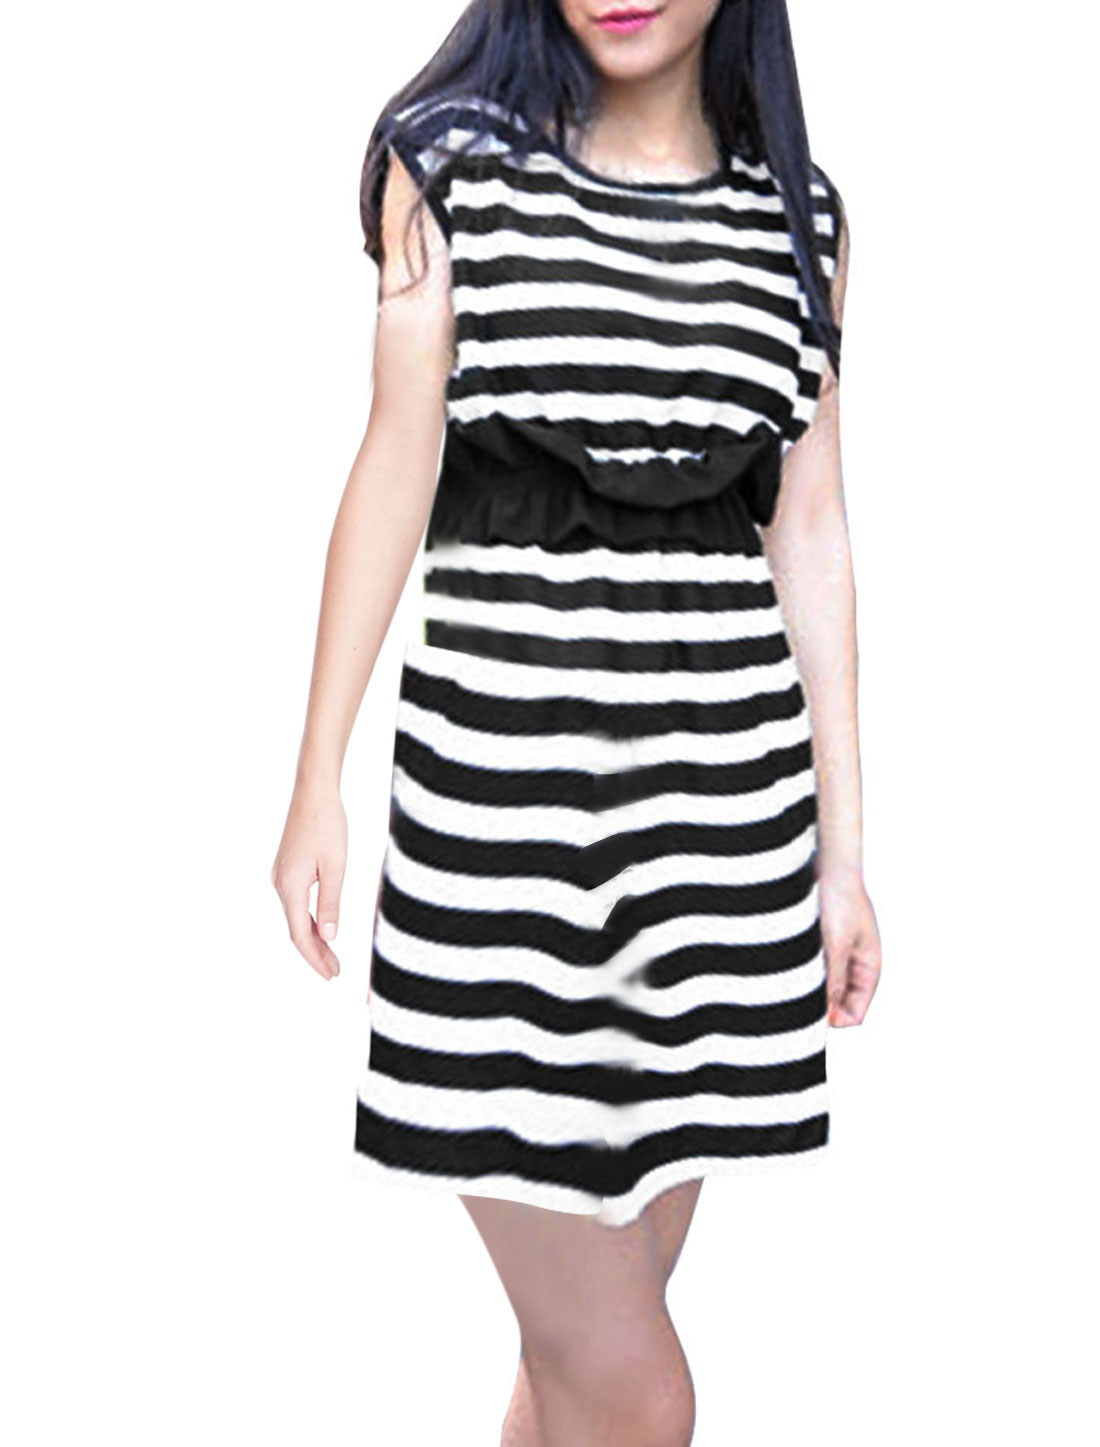 Lady Black White Stripes Round Neck Elastic Waist Dress XS